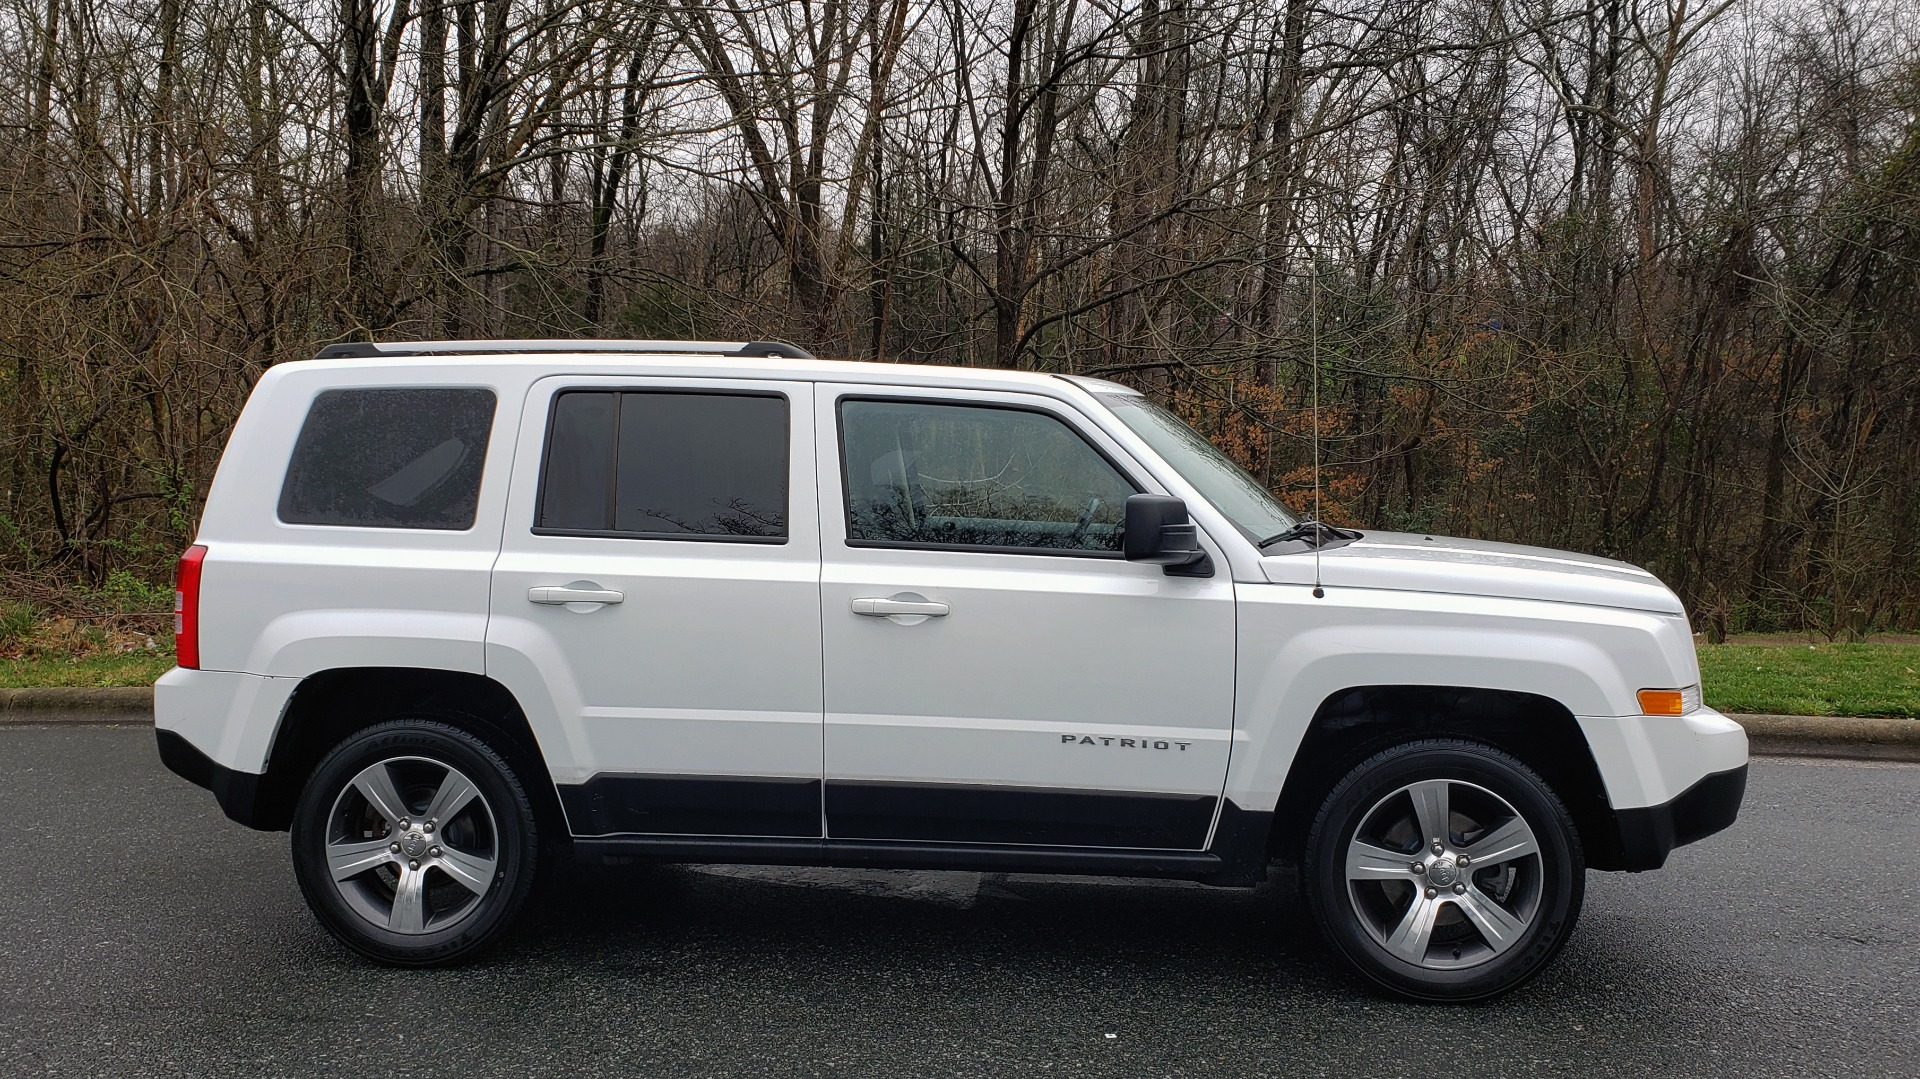 Used 2016 Jeep PATRIOT HIGH ALTITUDE EDITION 4WD / SUNROOF / 4-CYL / 6-SPD AUTO for sale $14,695 at Formula Imports in Charlotte NC 28227 5